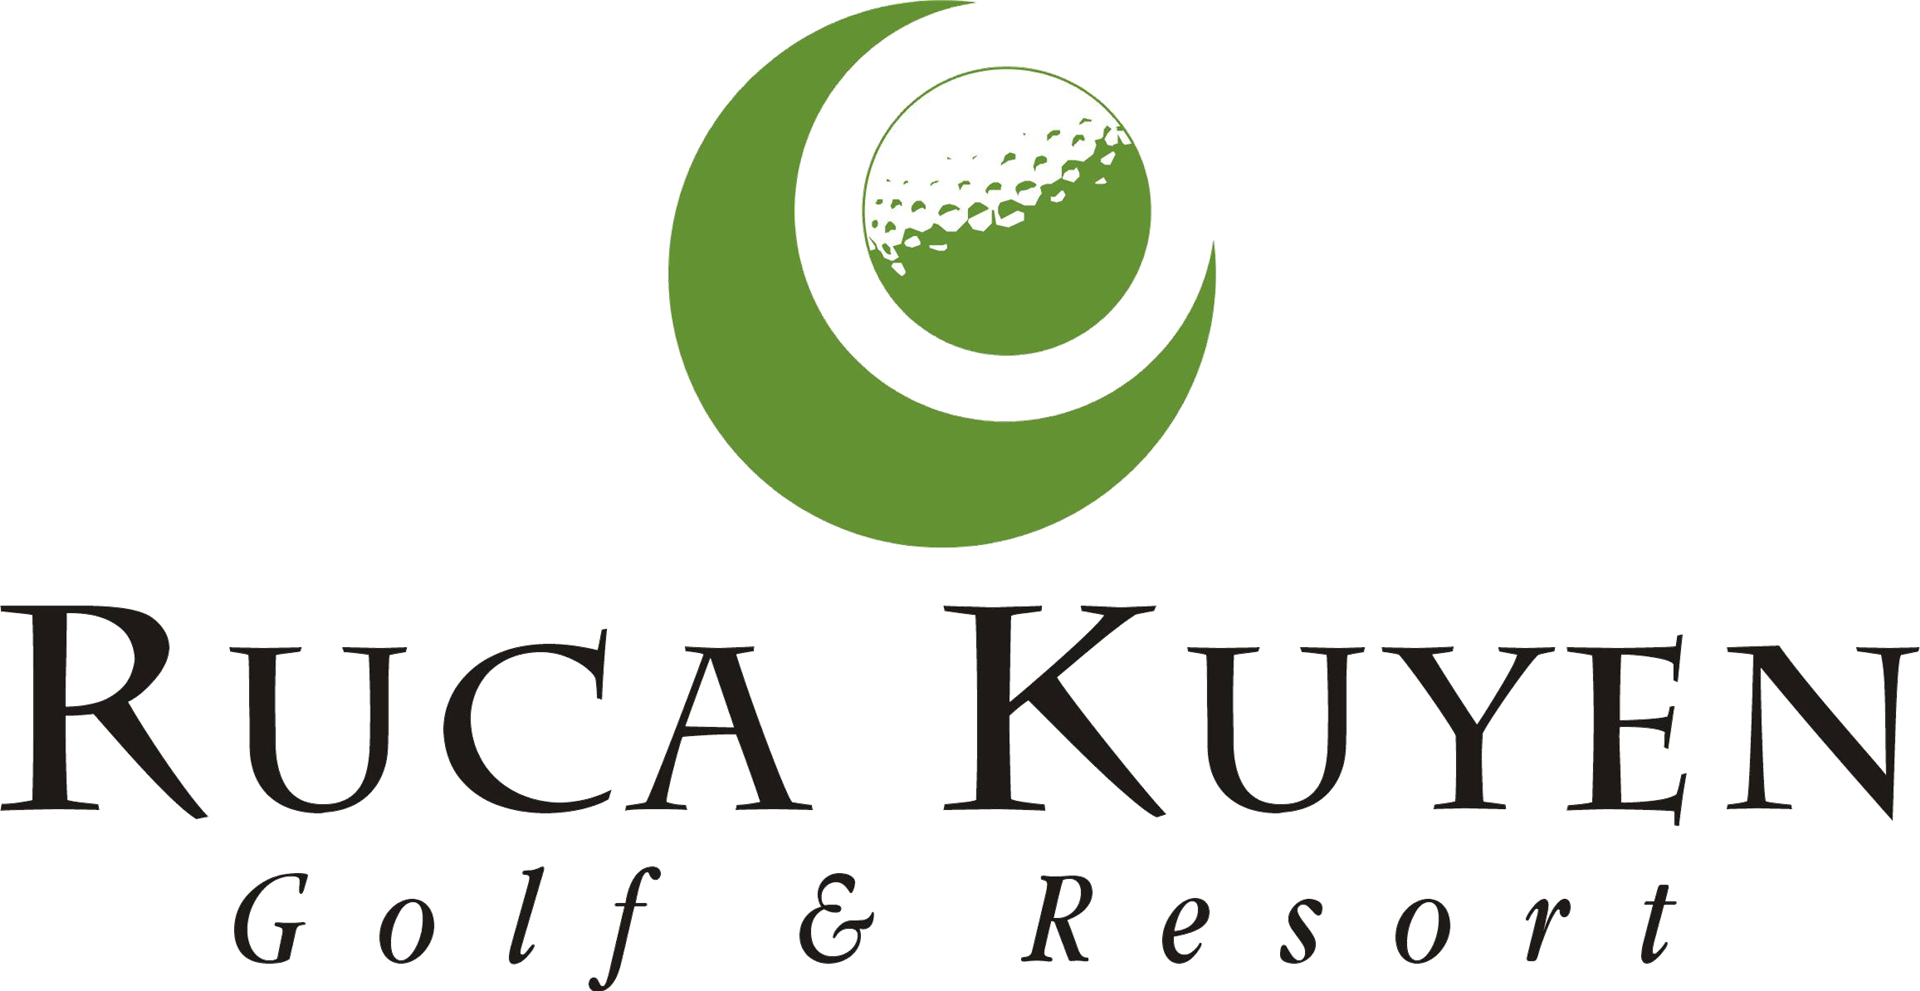 Ruca Kuyen Golf & Resort